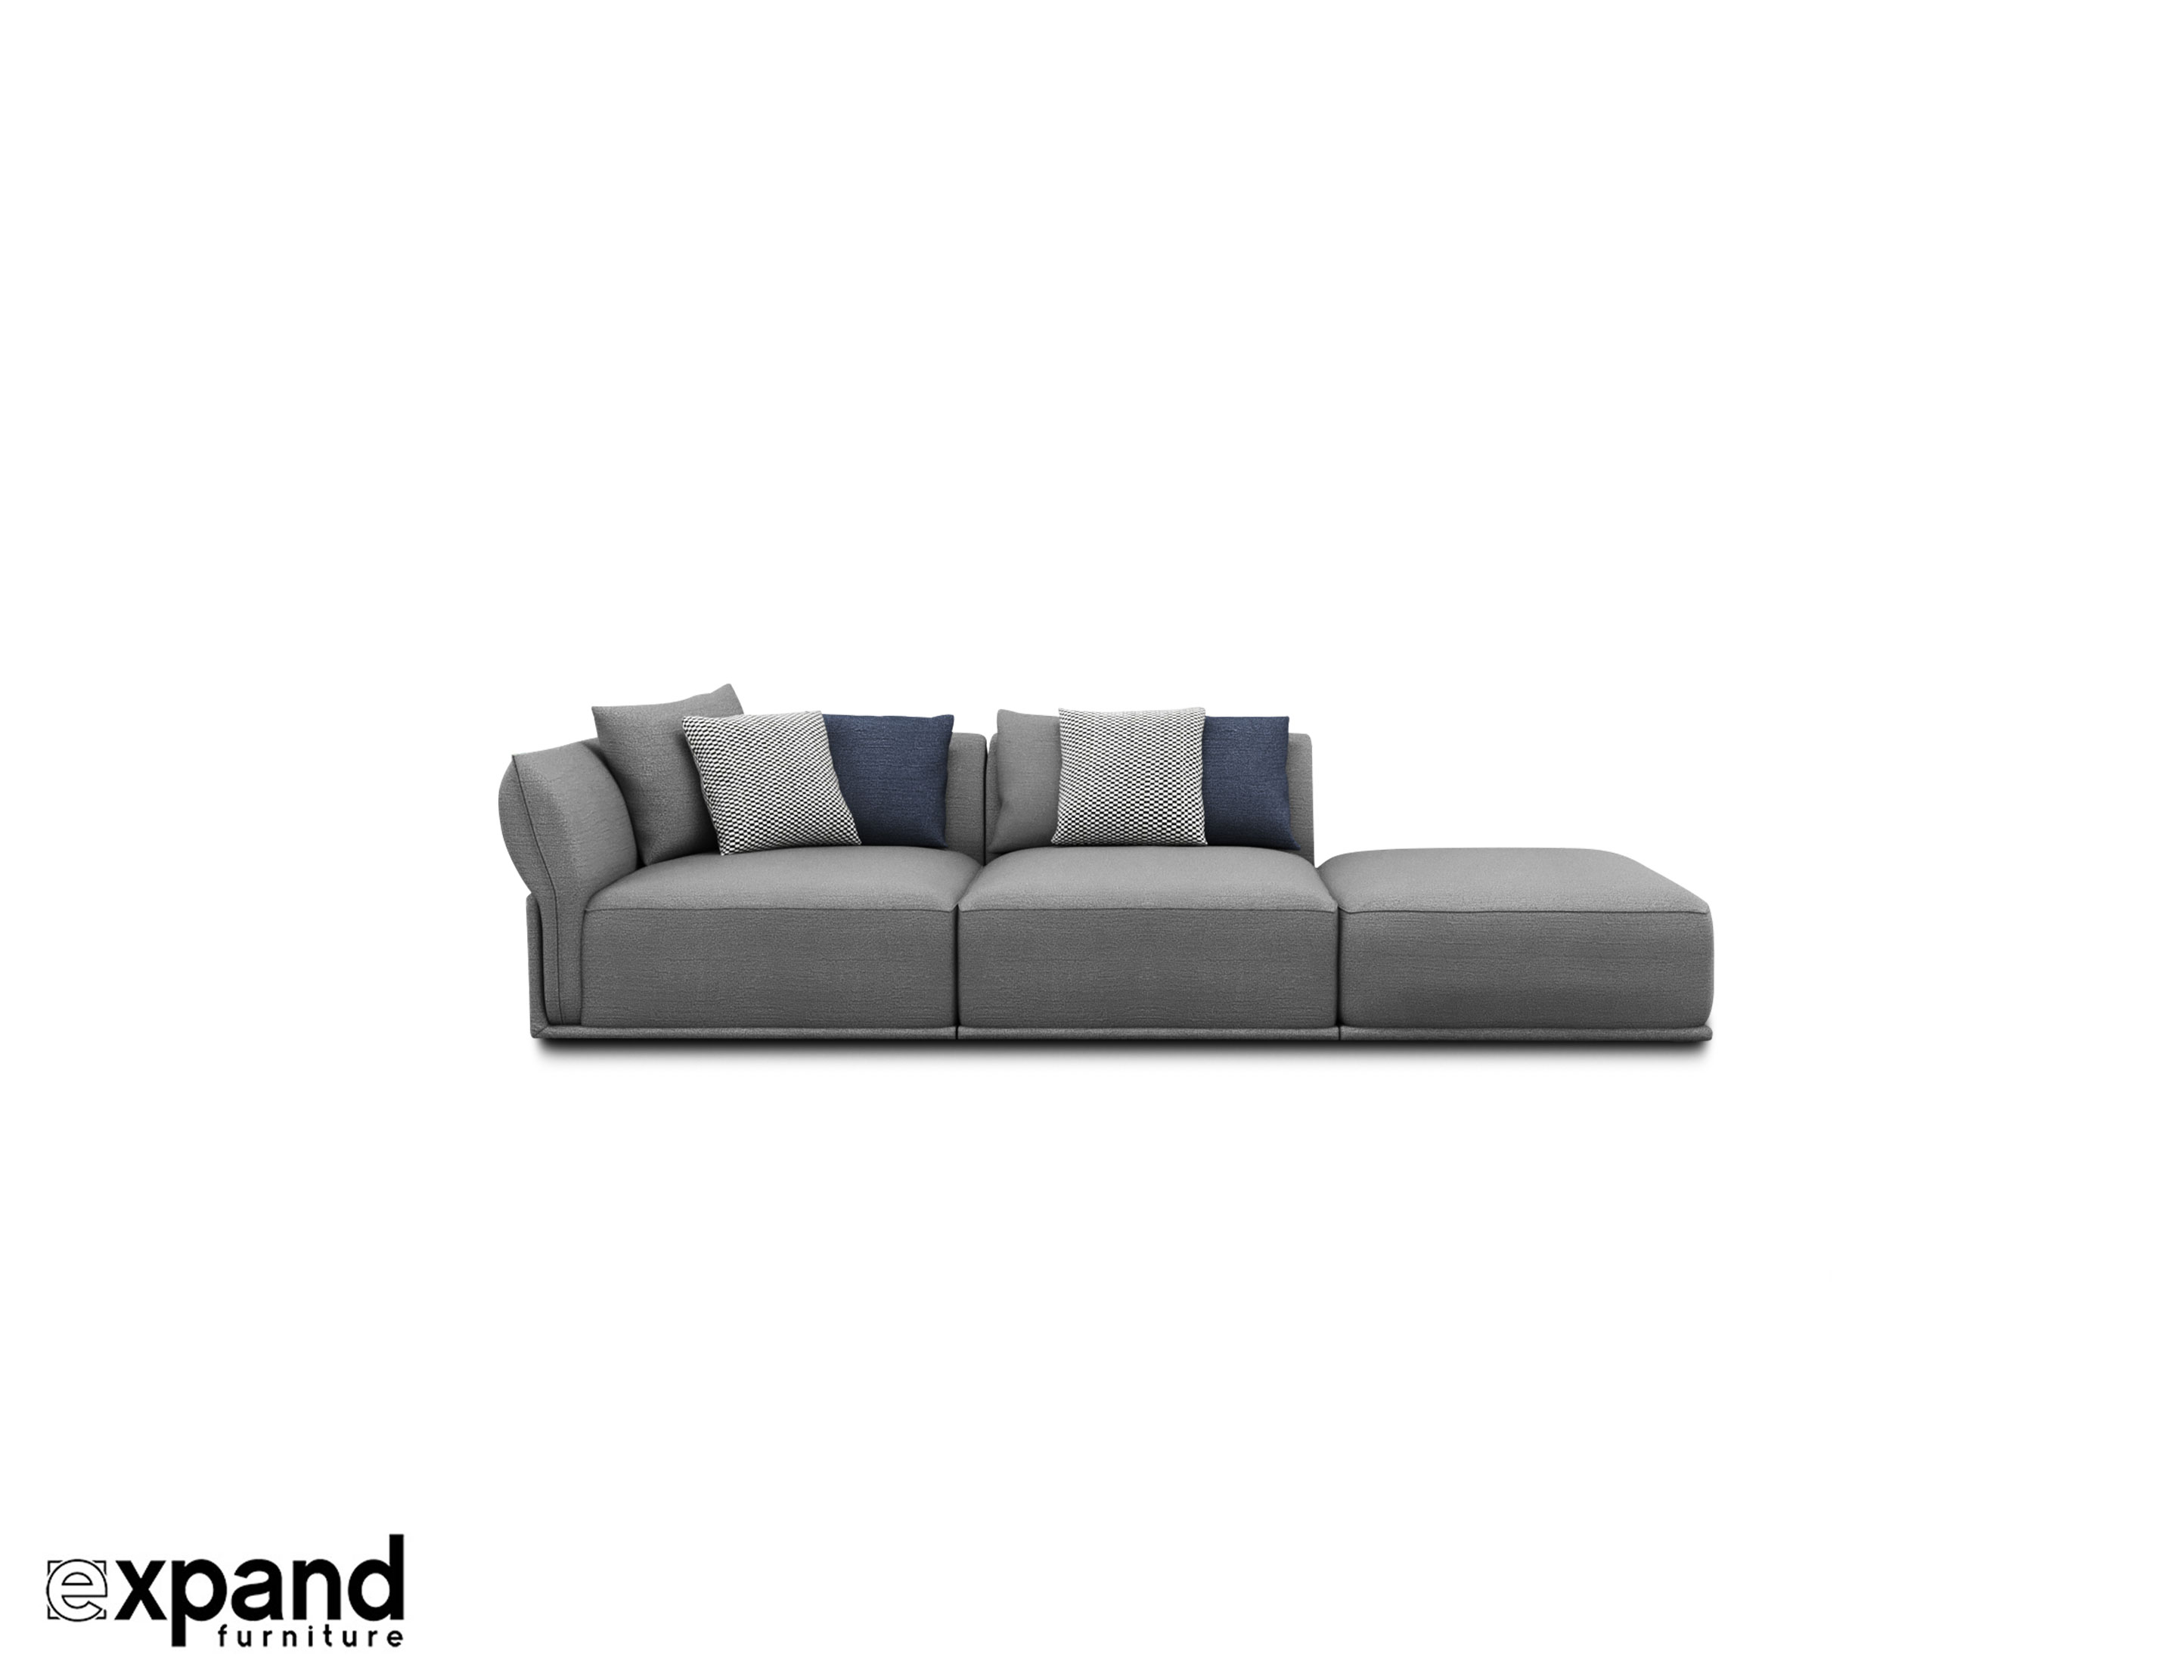 Stratus Contemporary Sofa 3 Seat